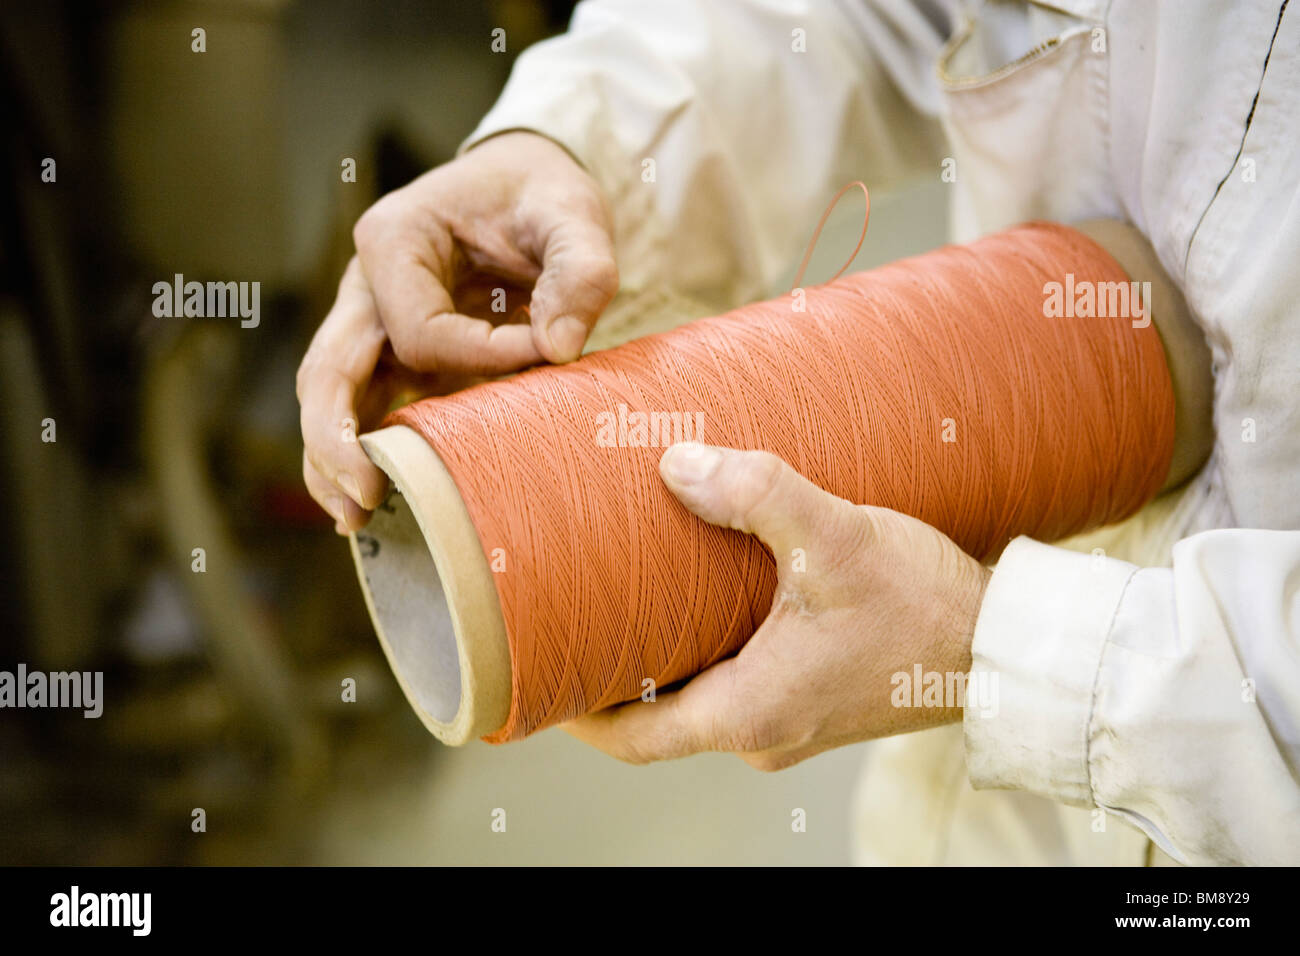 Recyclable composite textile fabrication department of factory, worker performing quality control on thread - Stock Image